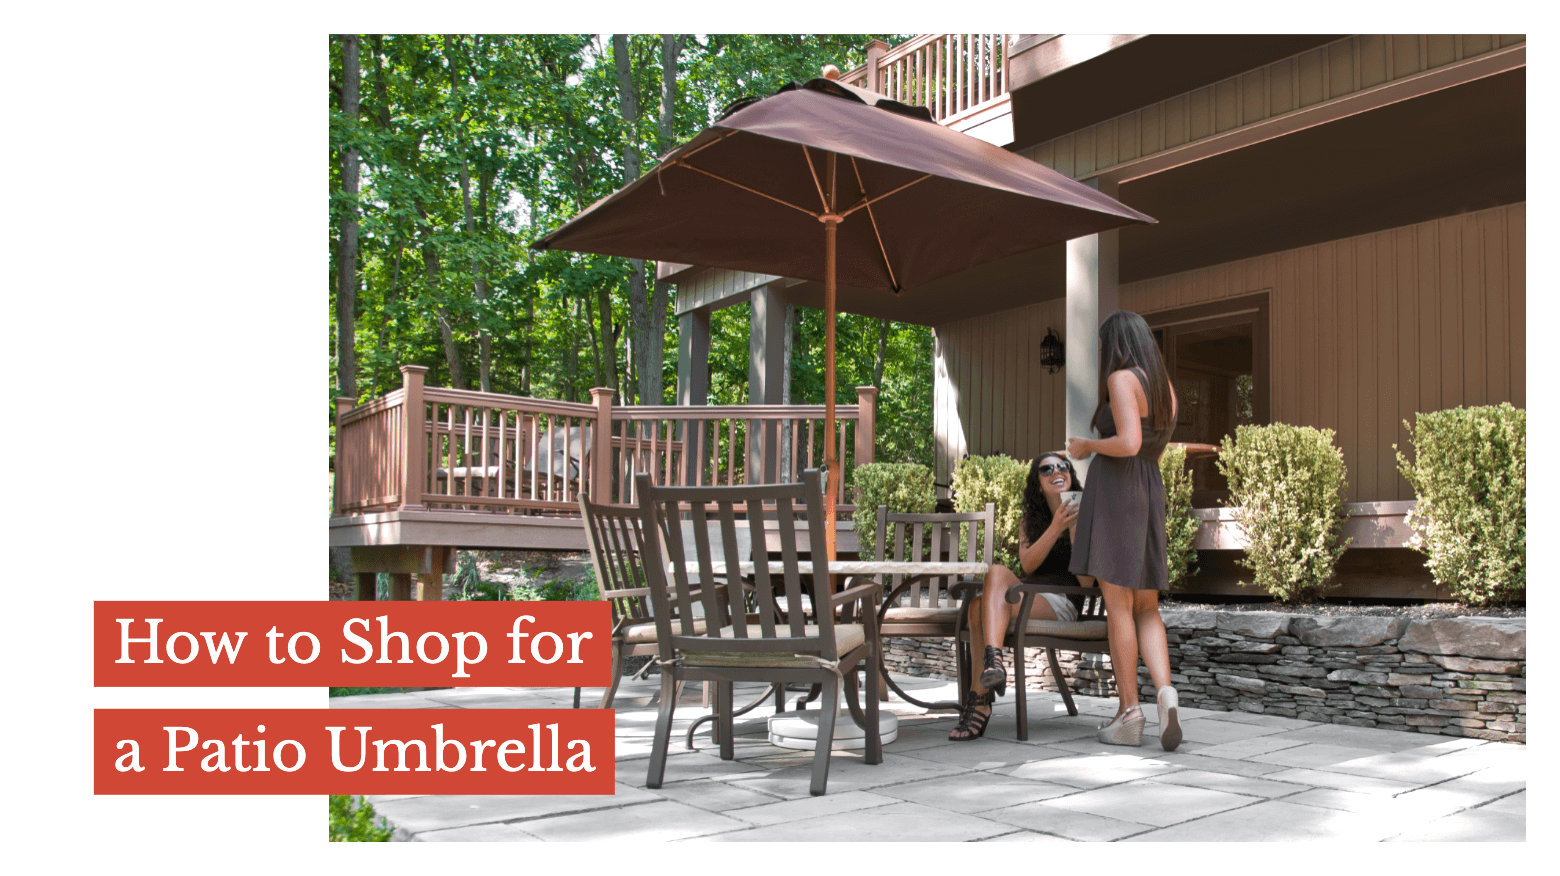 How to Shop for a Patio Umbrella